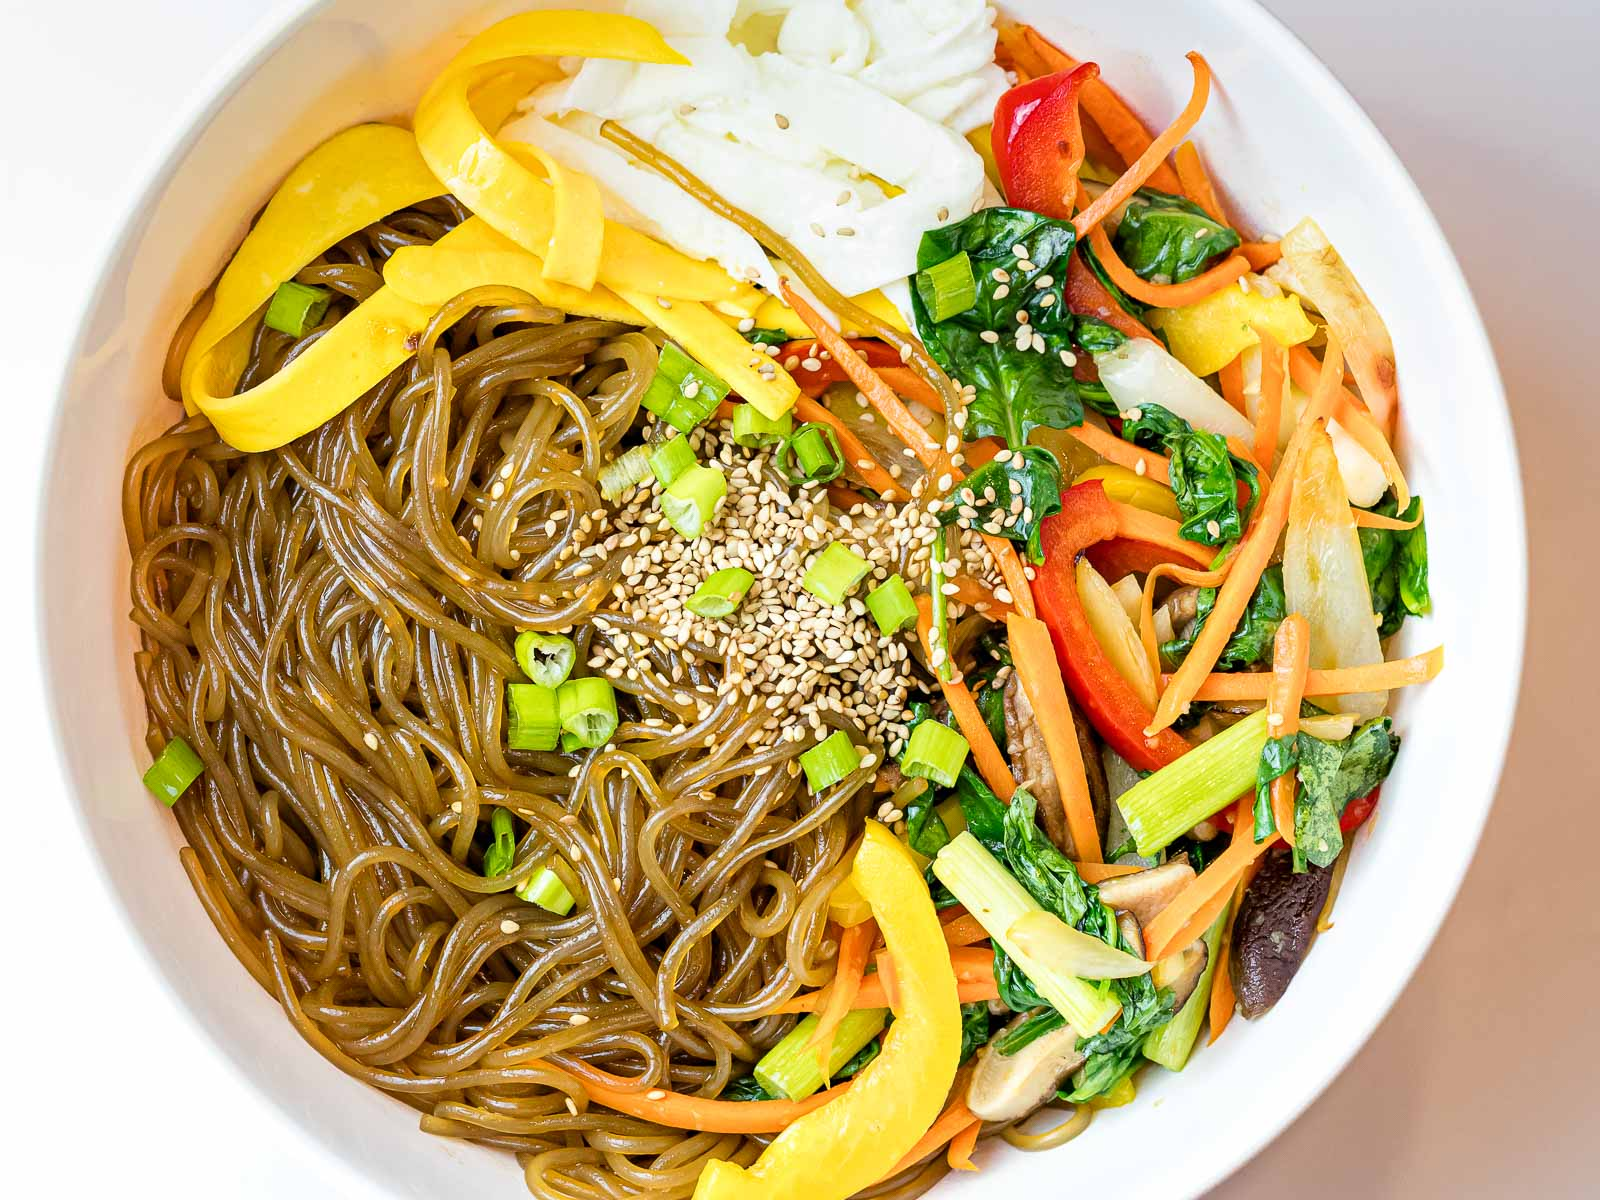 Korean glass noodles with stir fried colorful vegetables and sesame seeds